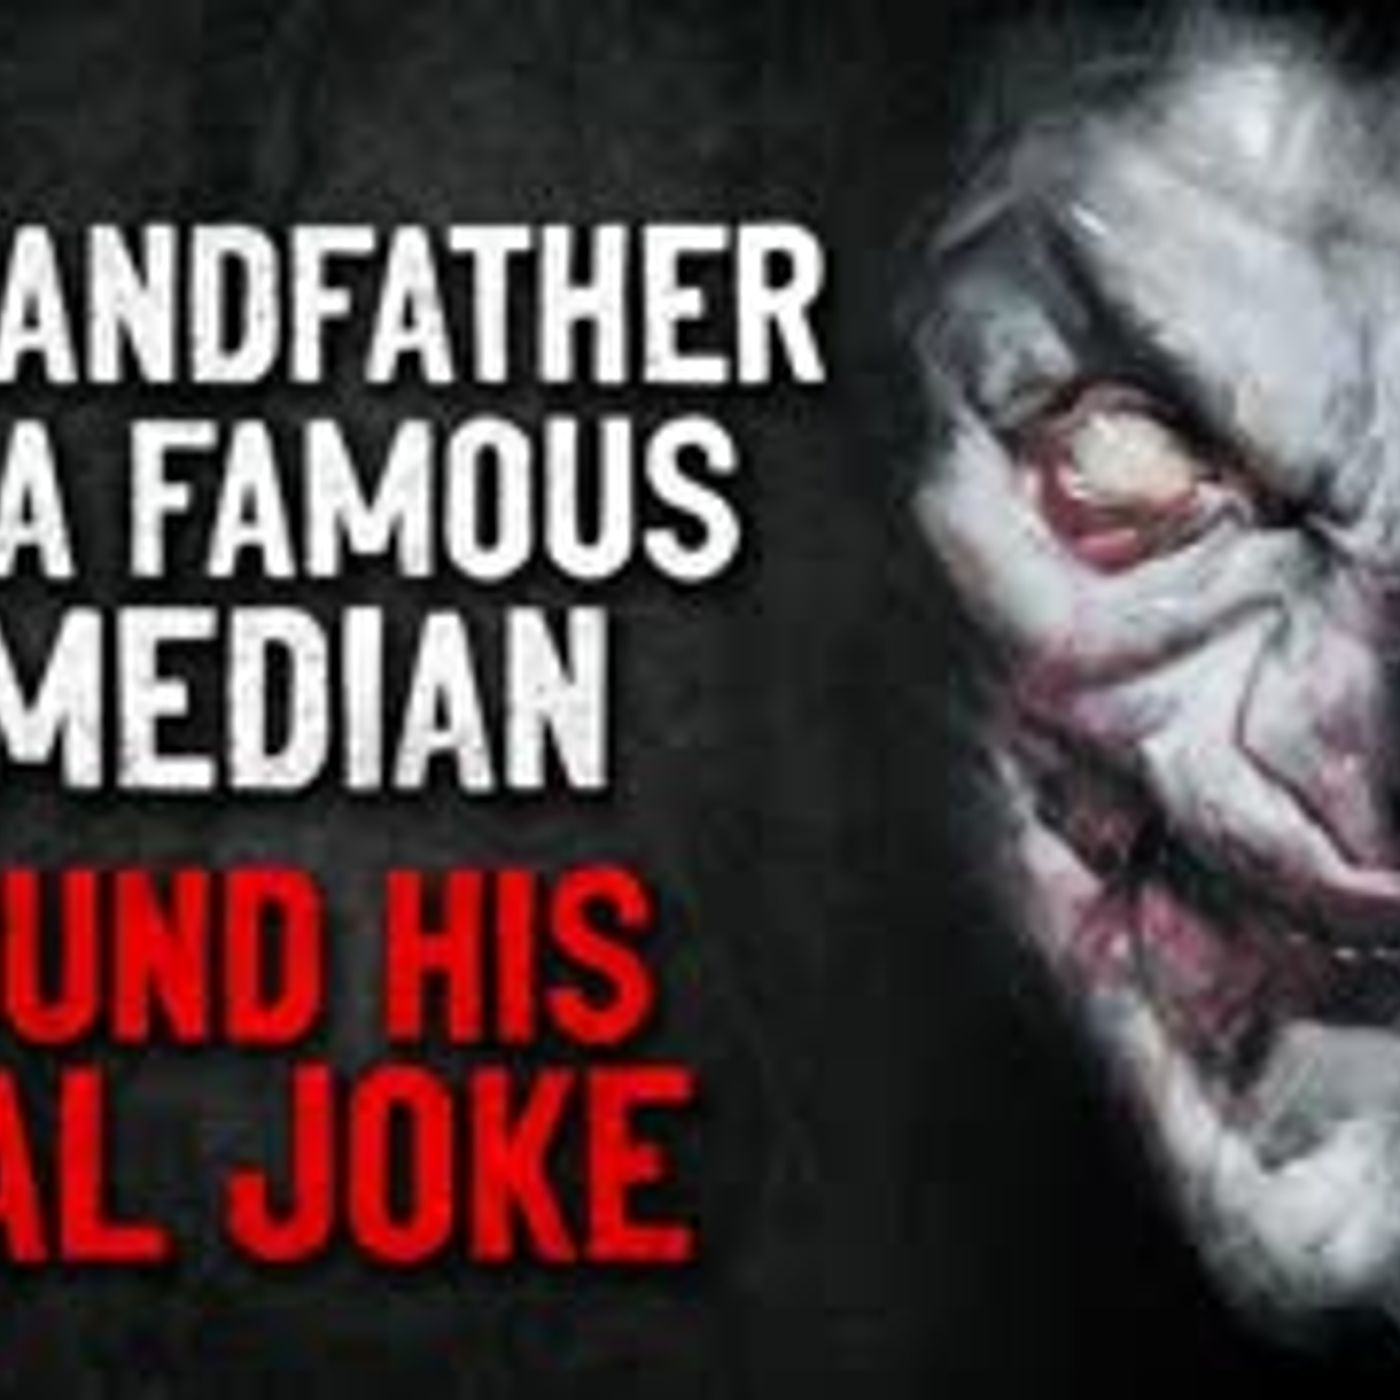 """My grandfather was a famous comedian. I found his final joke"" Creepypasta"